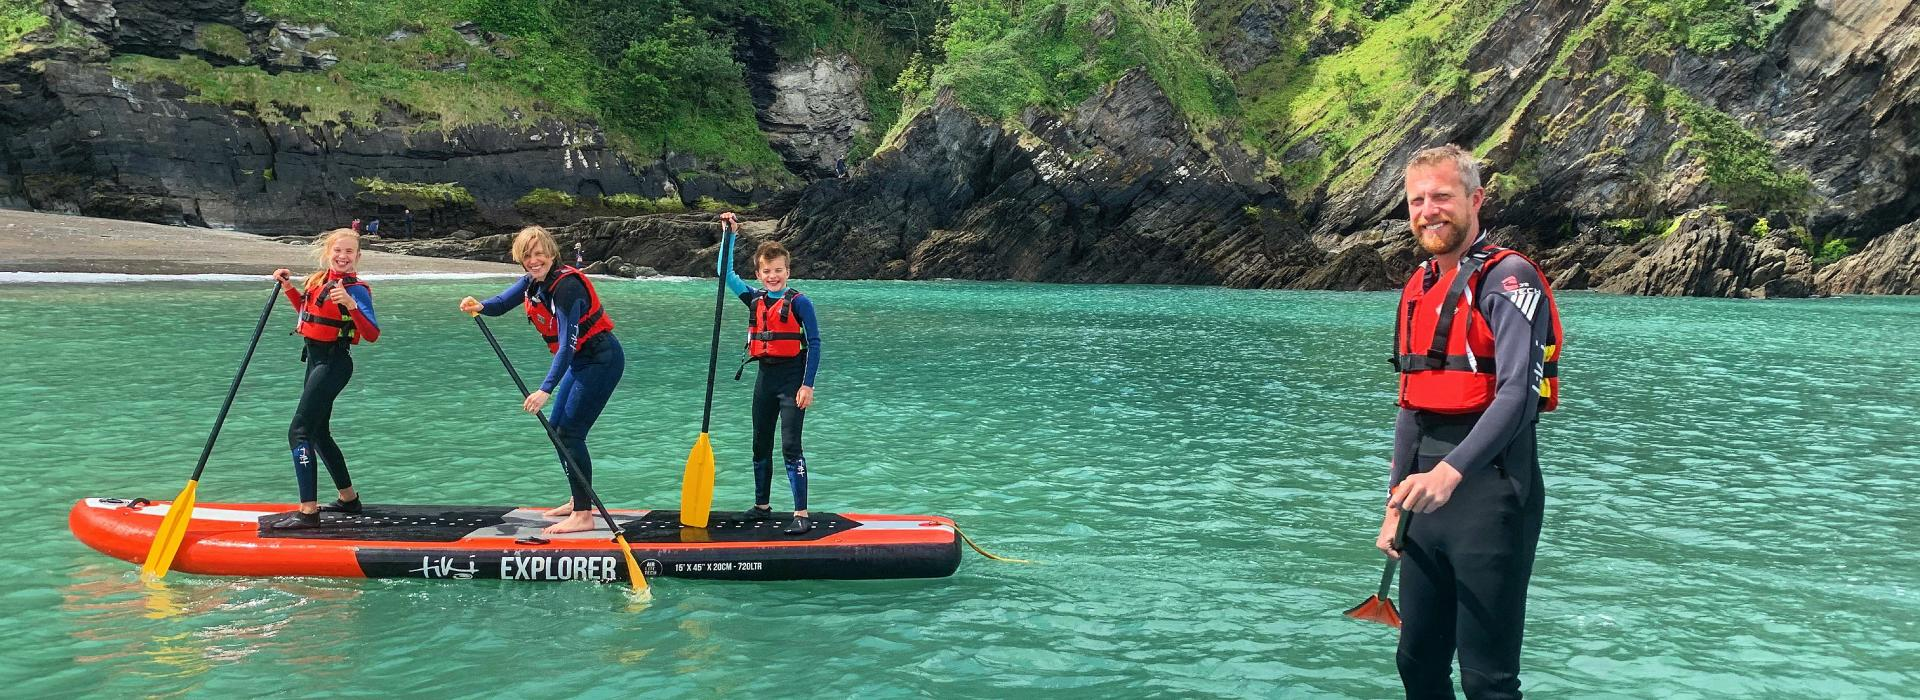 family, family holiday, north devon, things to do in devon, family activities devon, paddleboarding near me, paddleboard hire